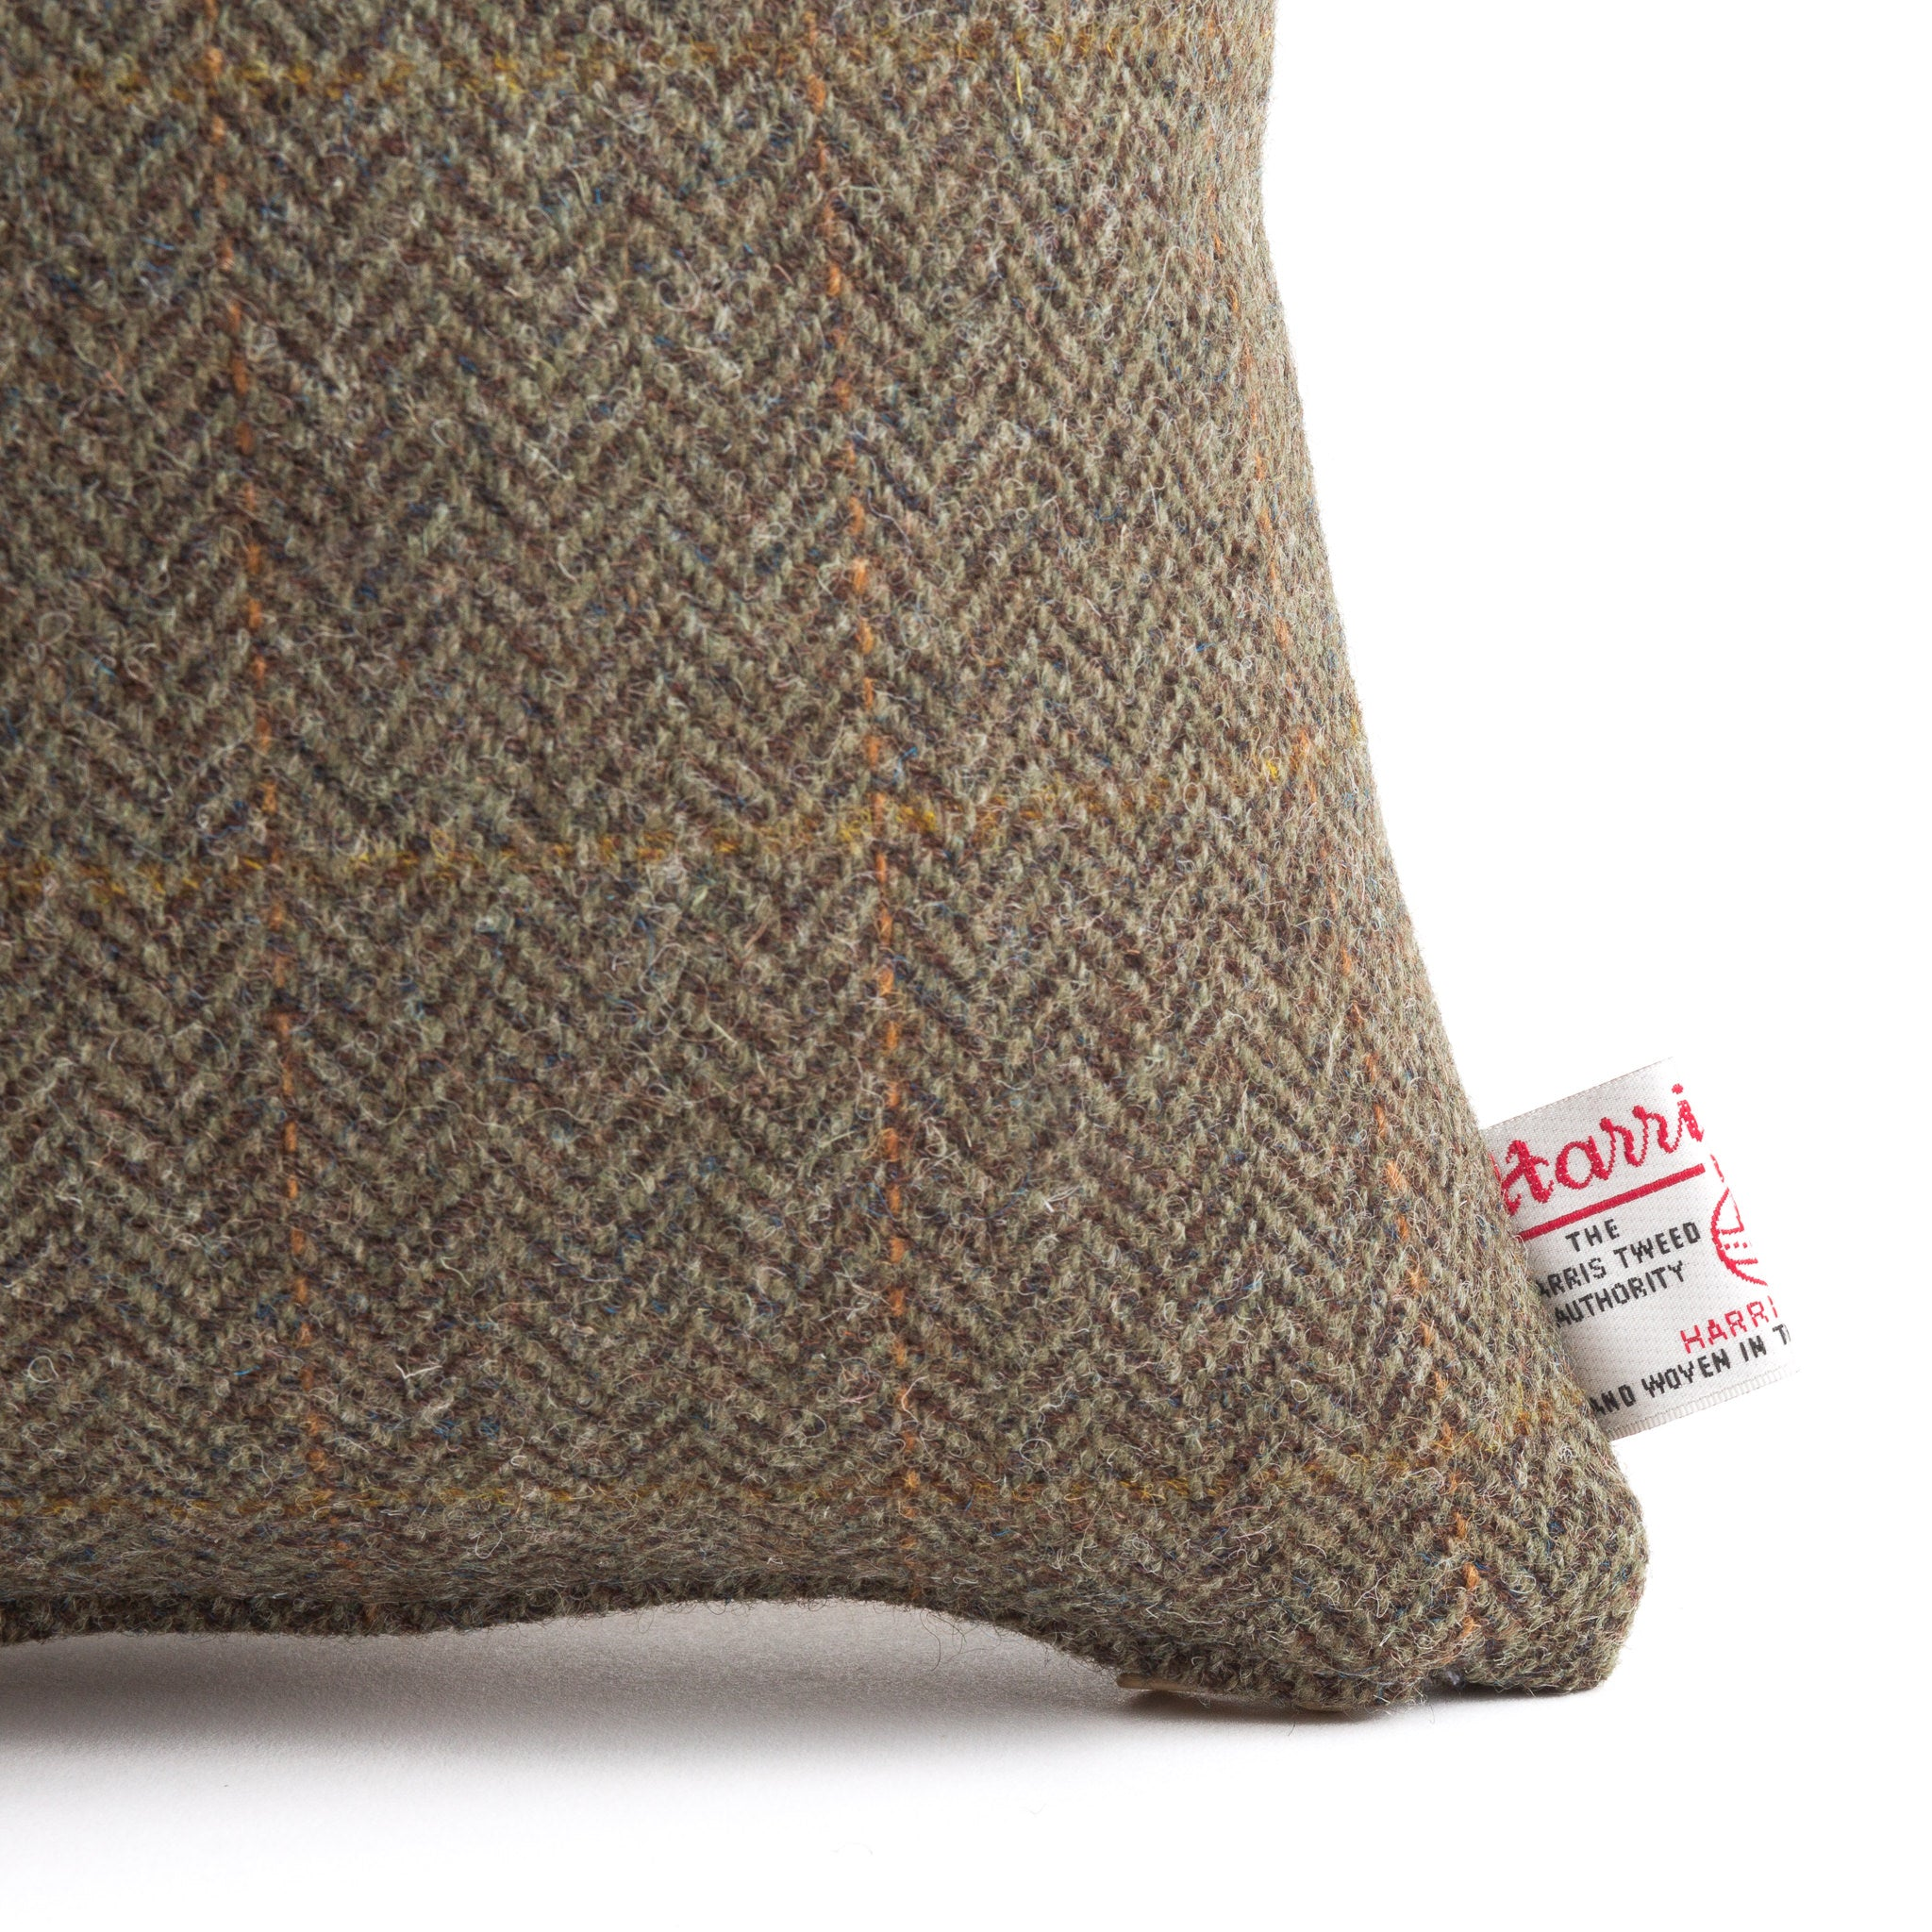 Harris Tweed/Pure Wool/Brown/Orange/Check/Outer Hebrides/Scatter/Cushion/Detail/